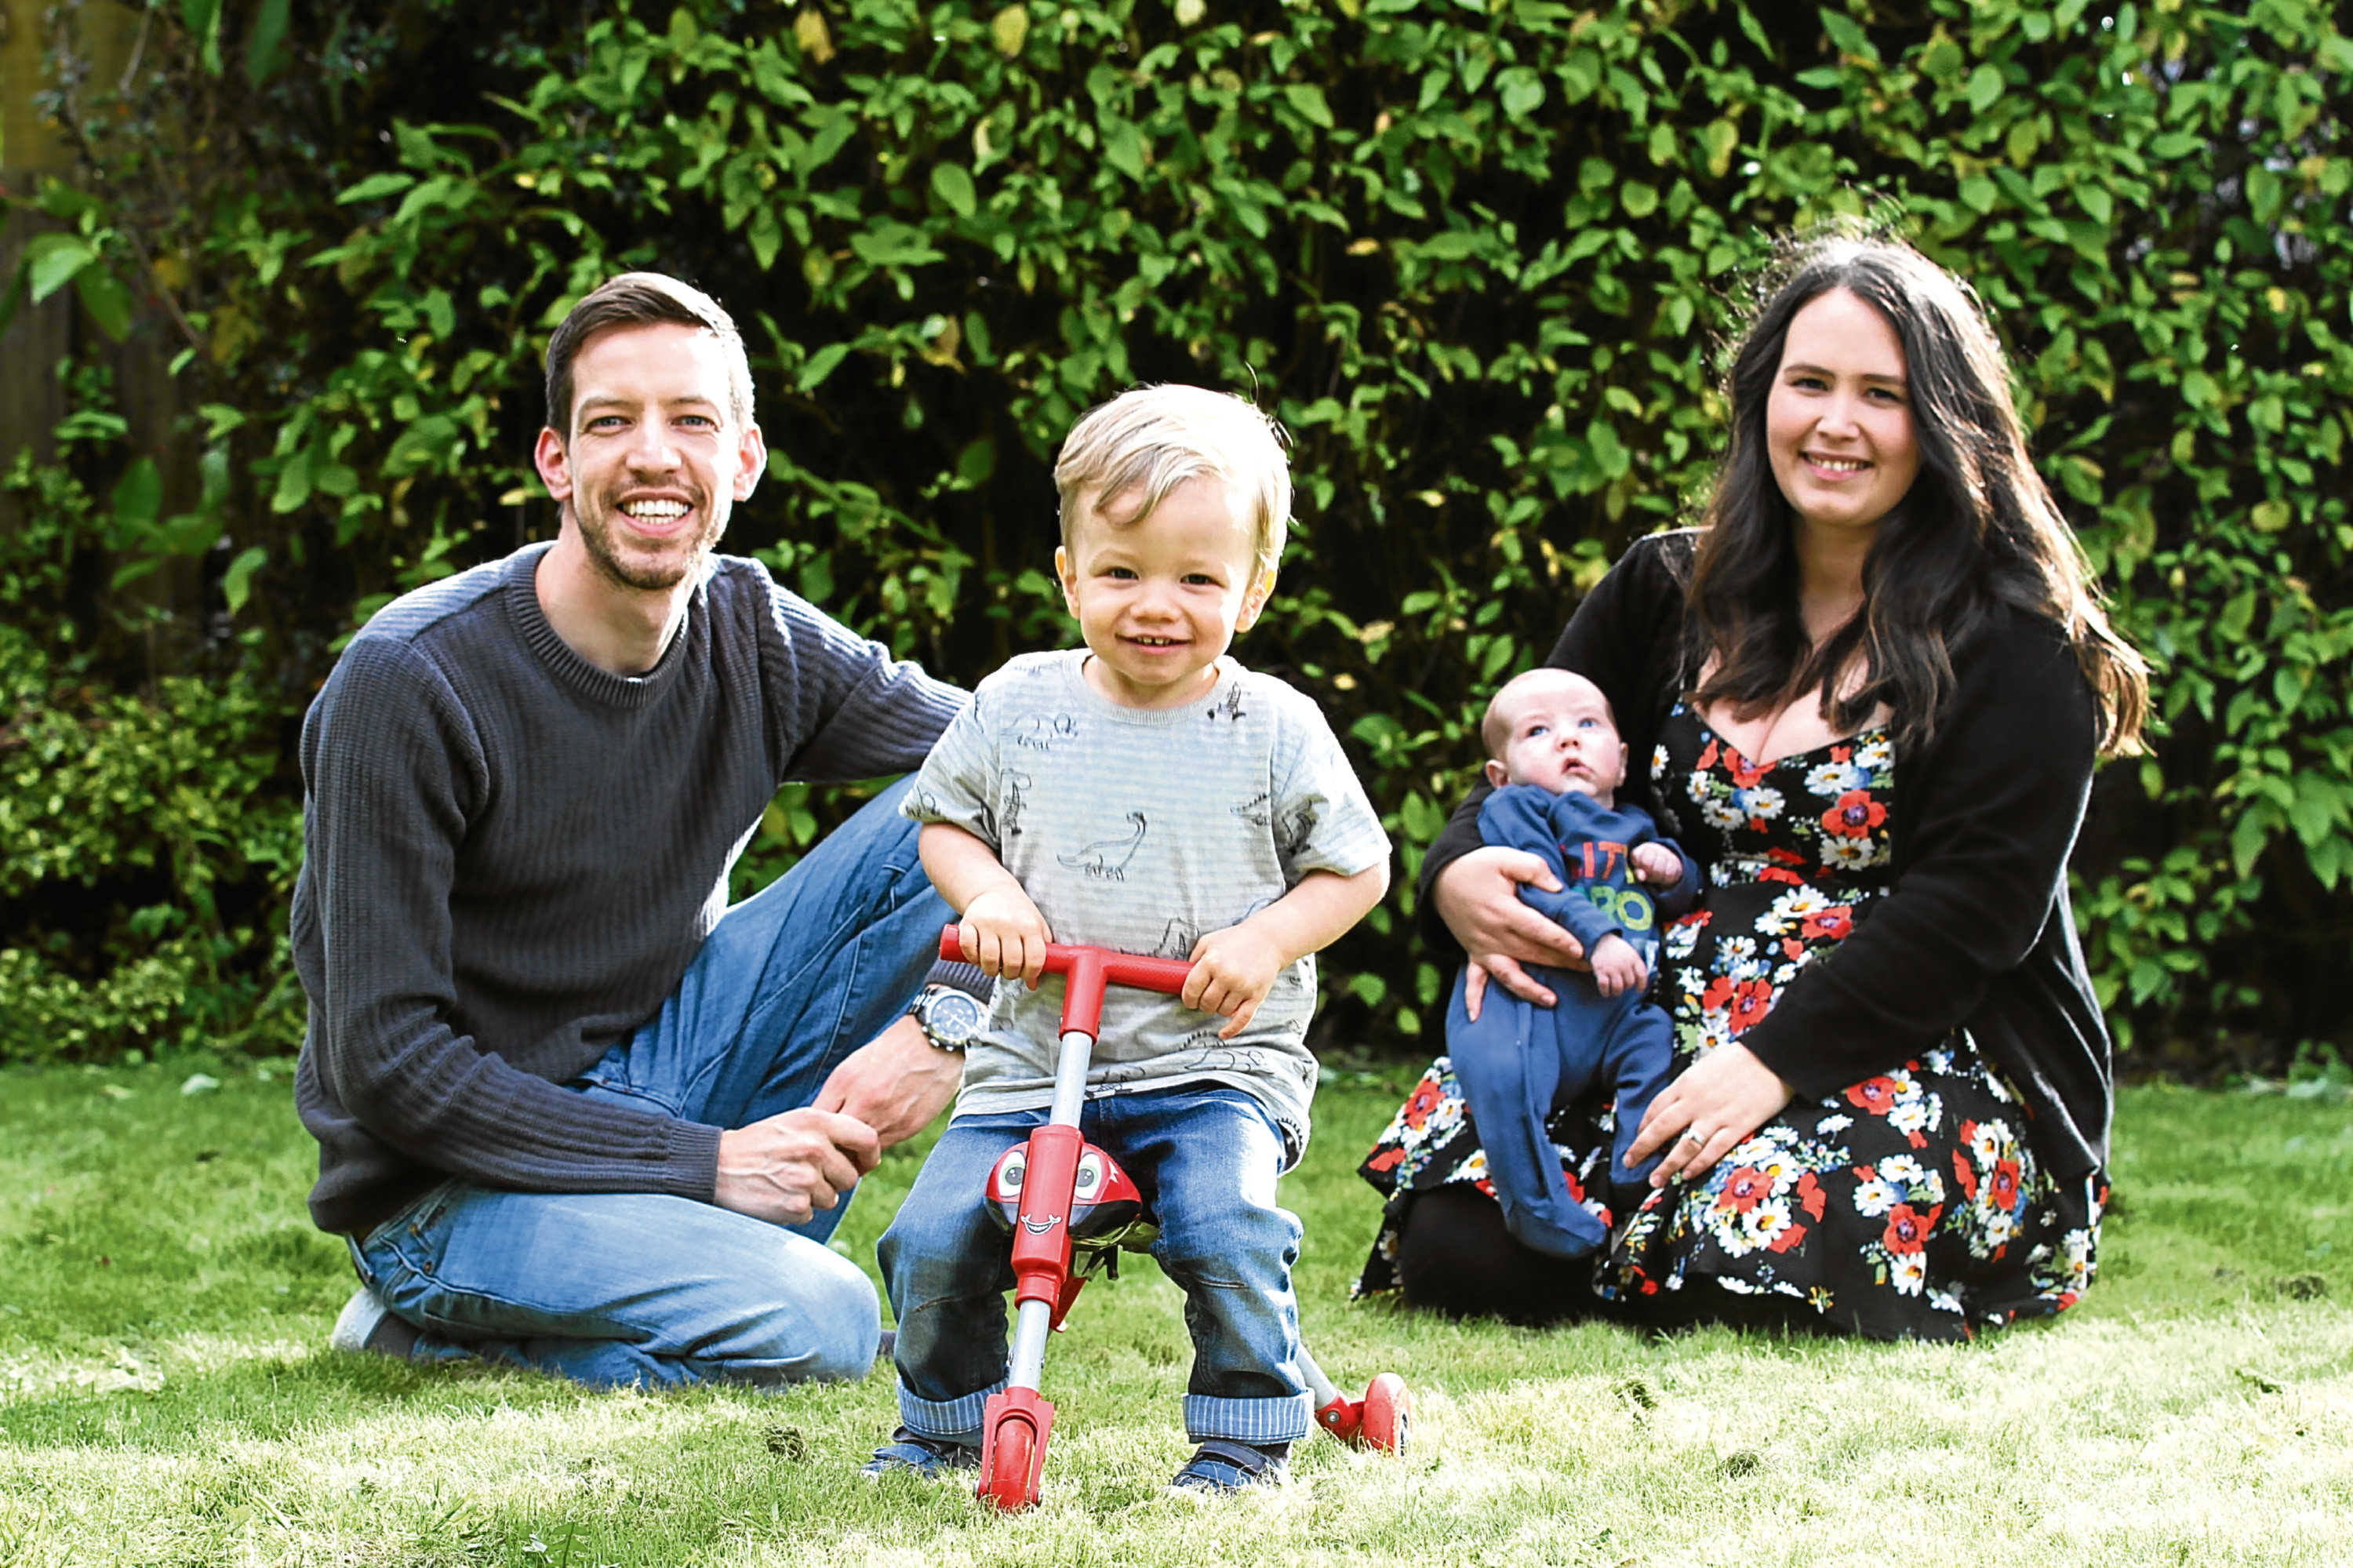 Dundee City Council leader John Alexander with his wife Sarah and sons Jack and Noah.